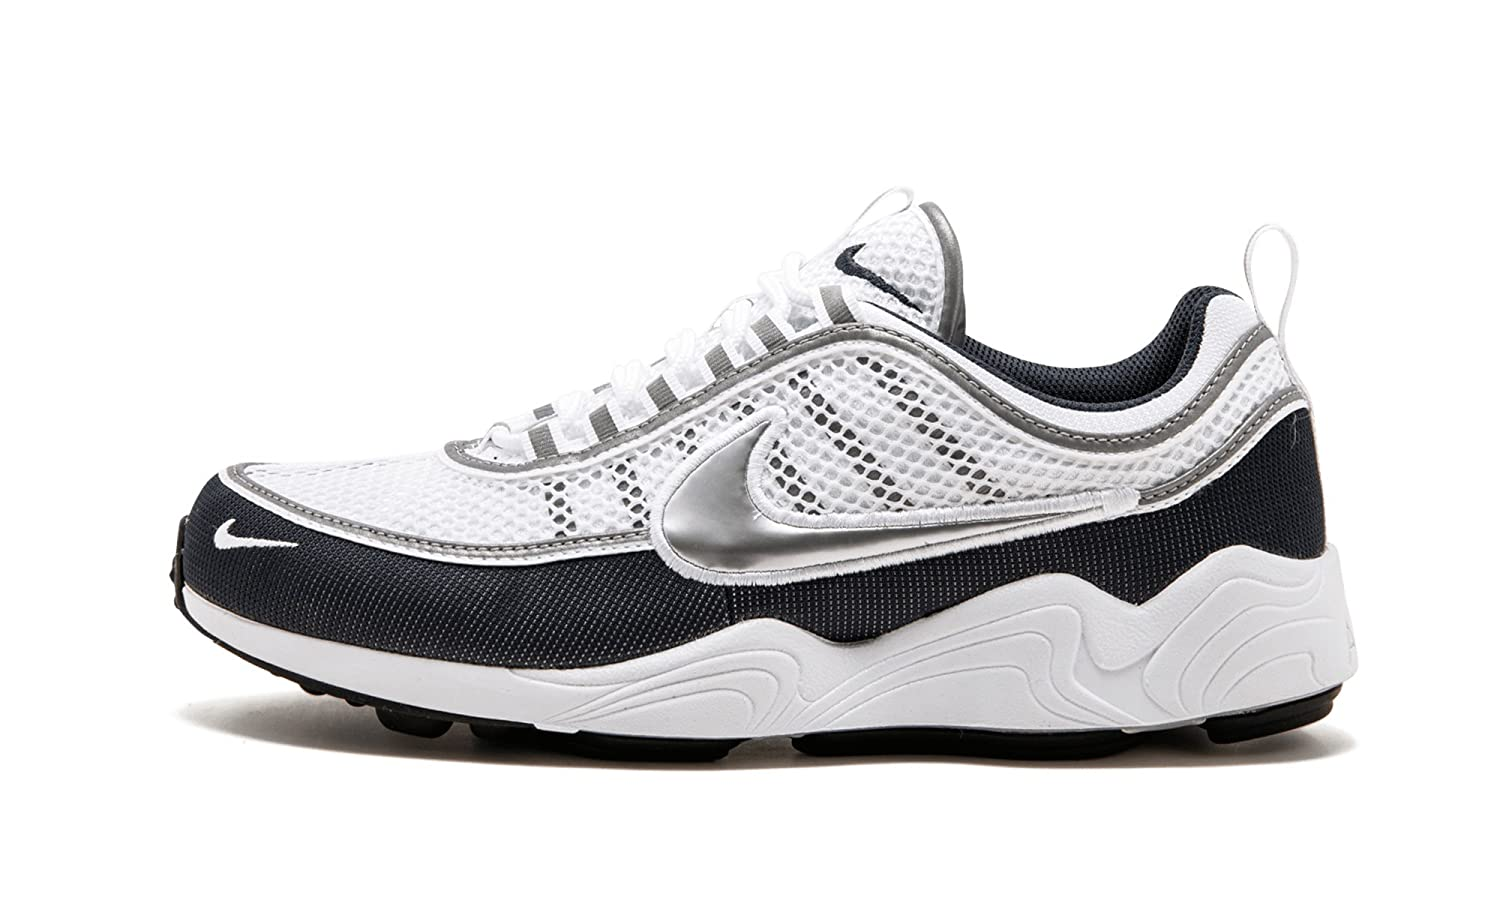 19741607599e8 Amazon.com: Nike Air Zoom Spiridon '16 - Size 8: Shoes